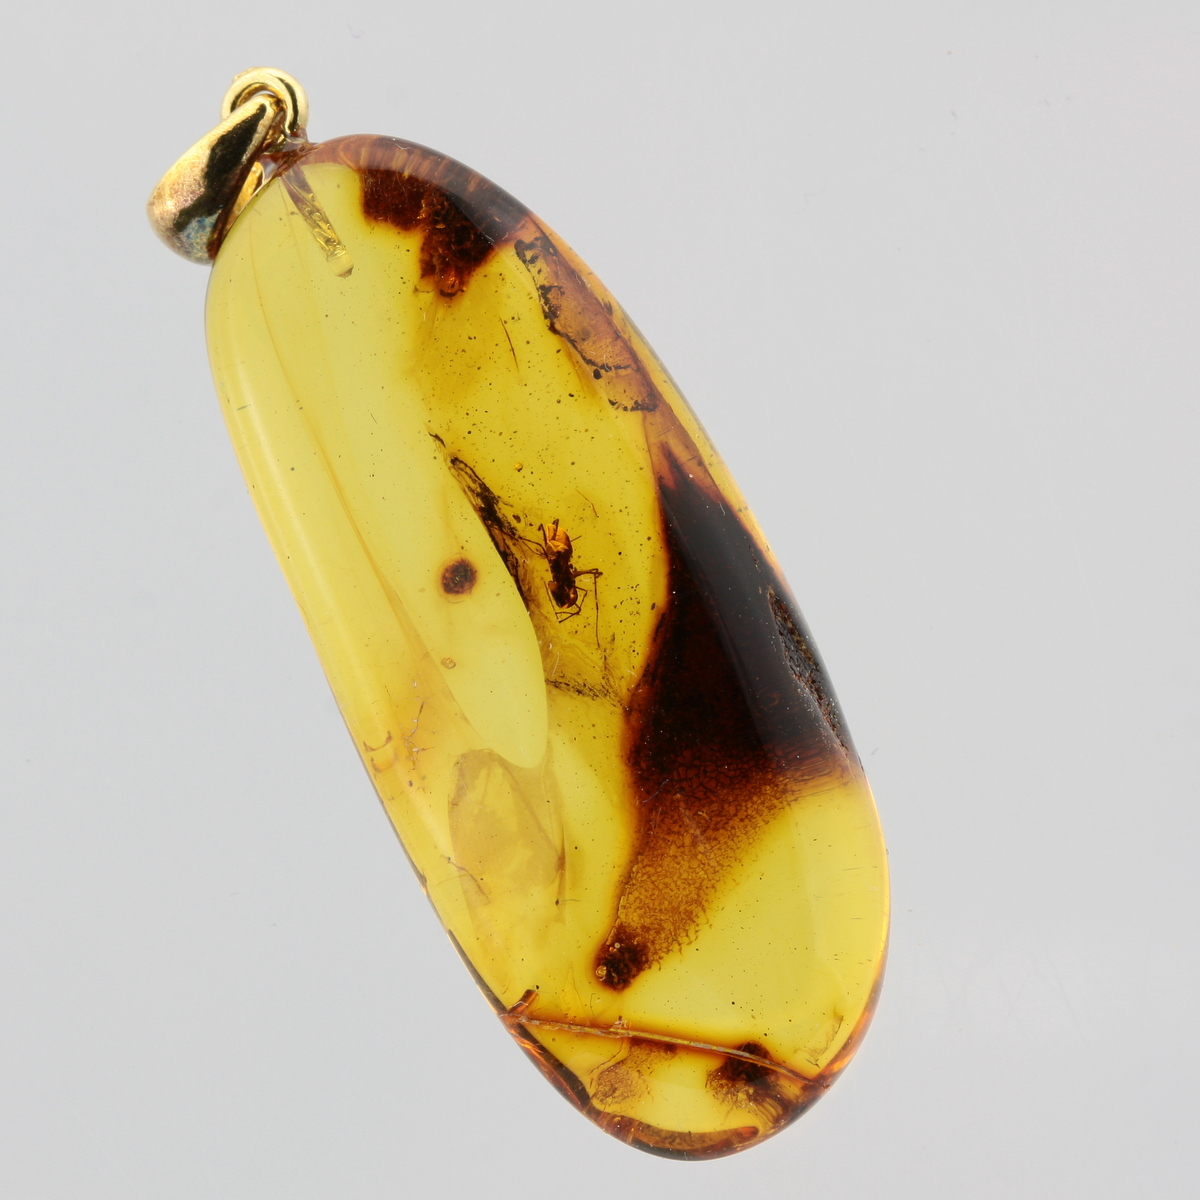 2 Insects Natural Baltic Amber Pendant With Insect Inclusion Silver GP 5 g #5117